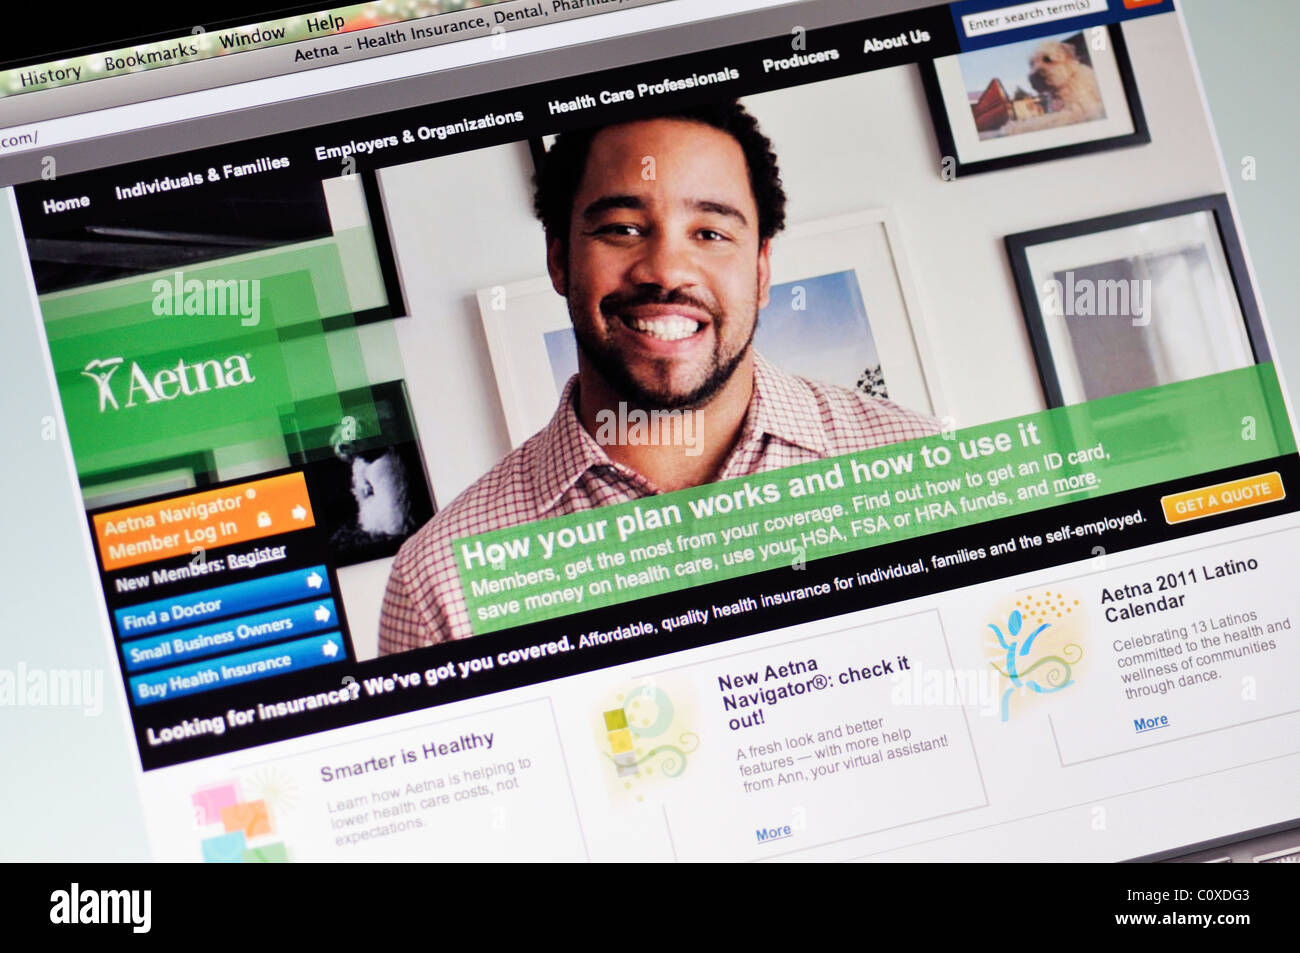 Aetna Health insurance website Stock Photo: 35002131 - Alamy